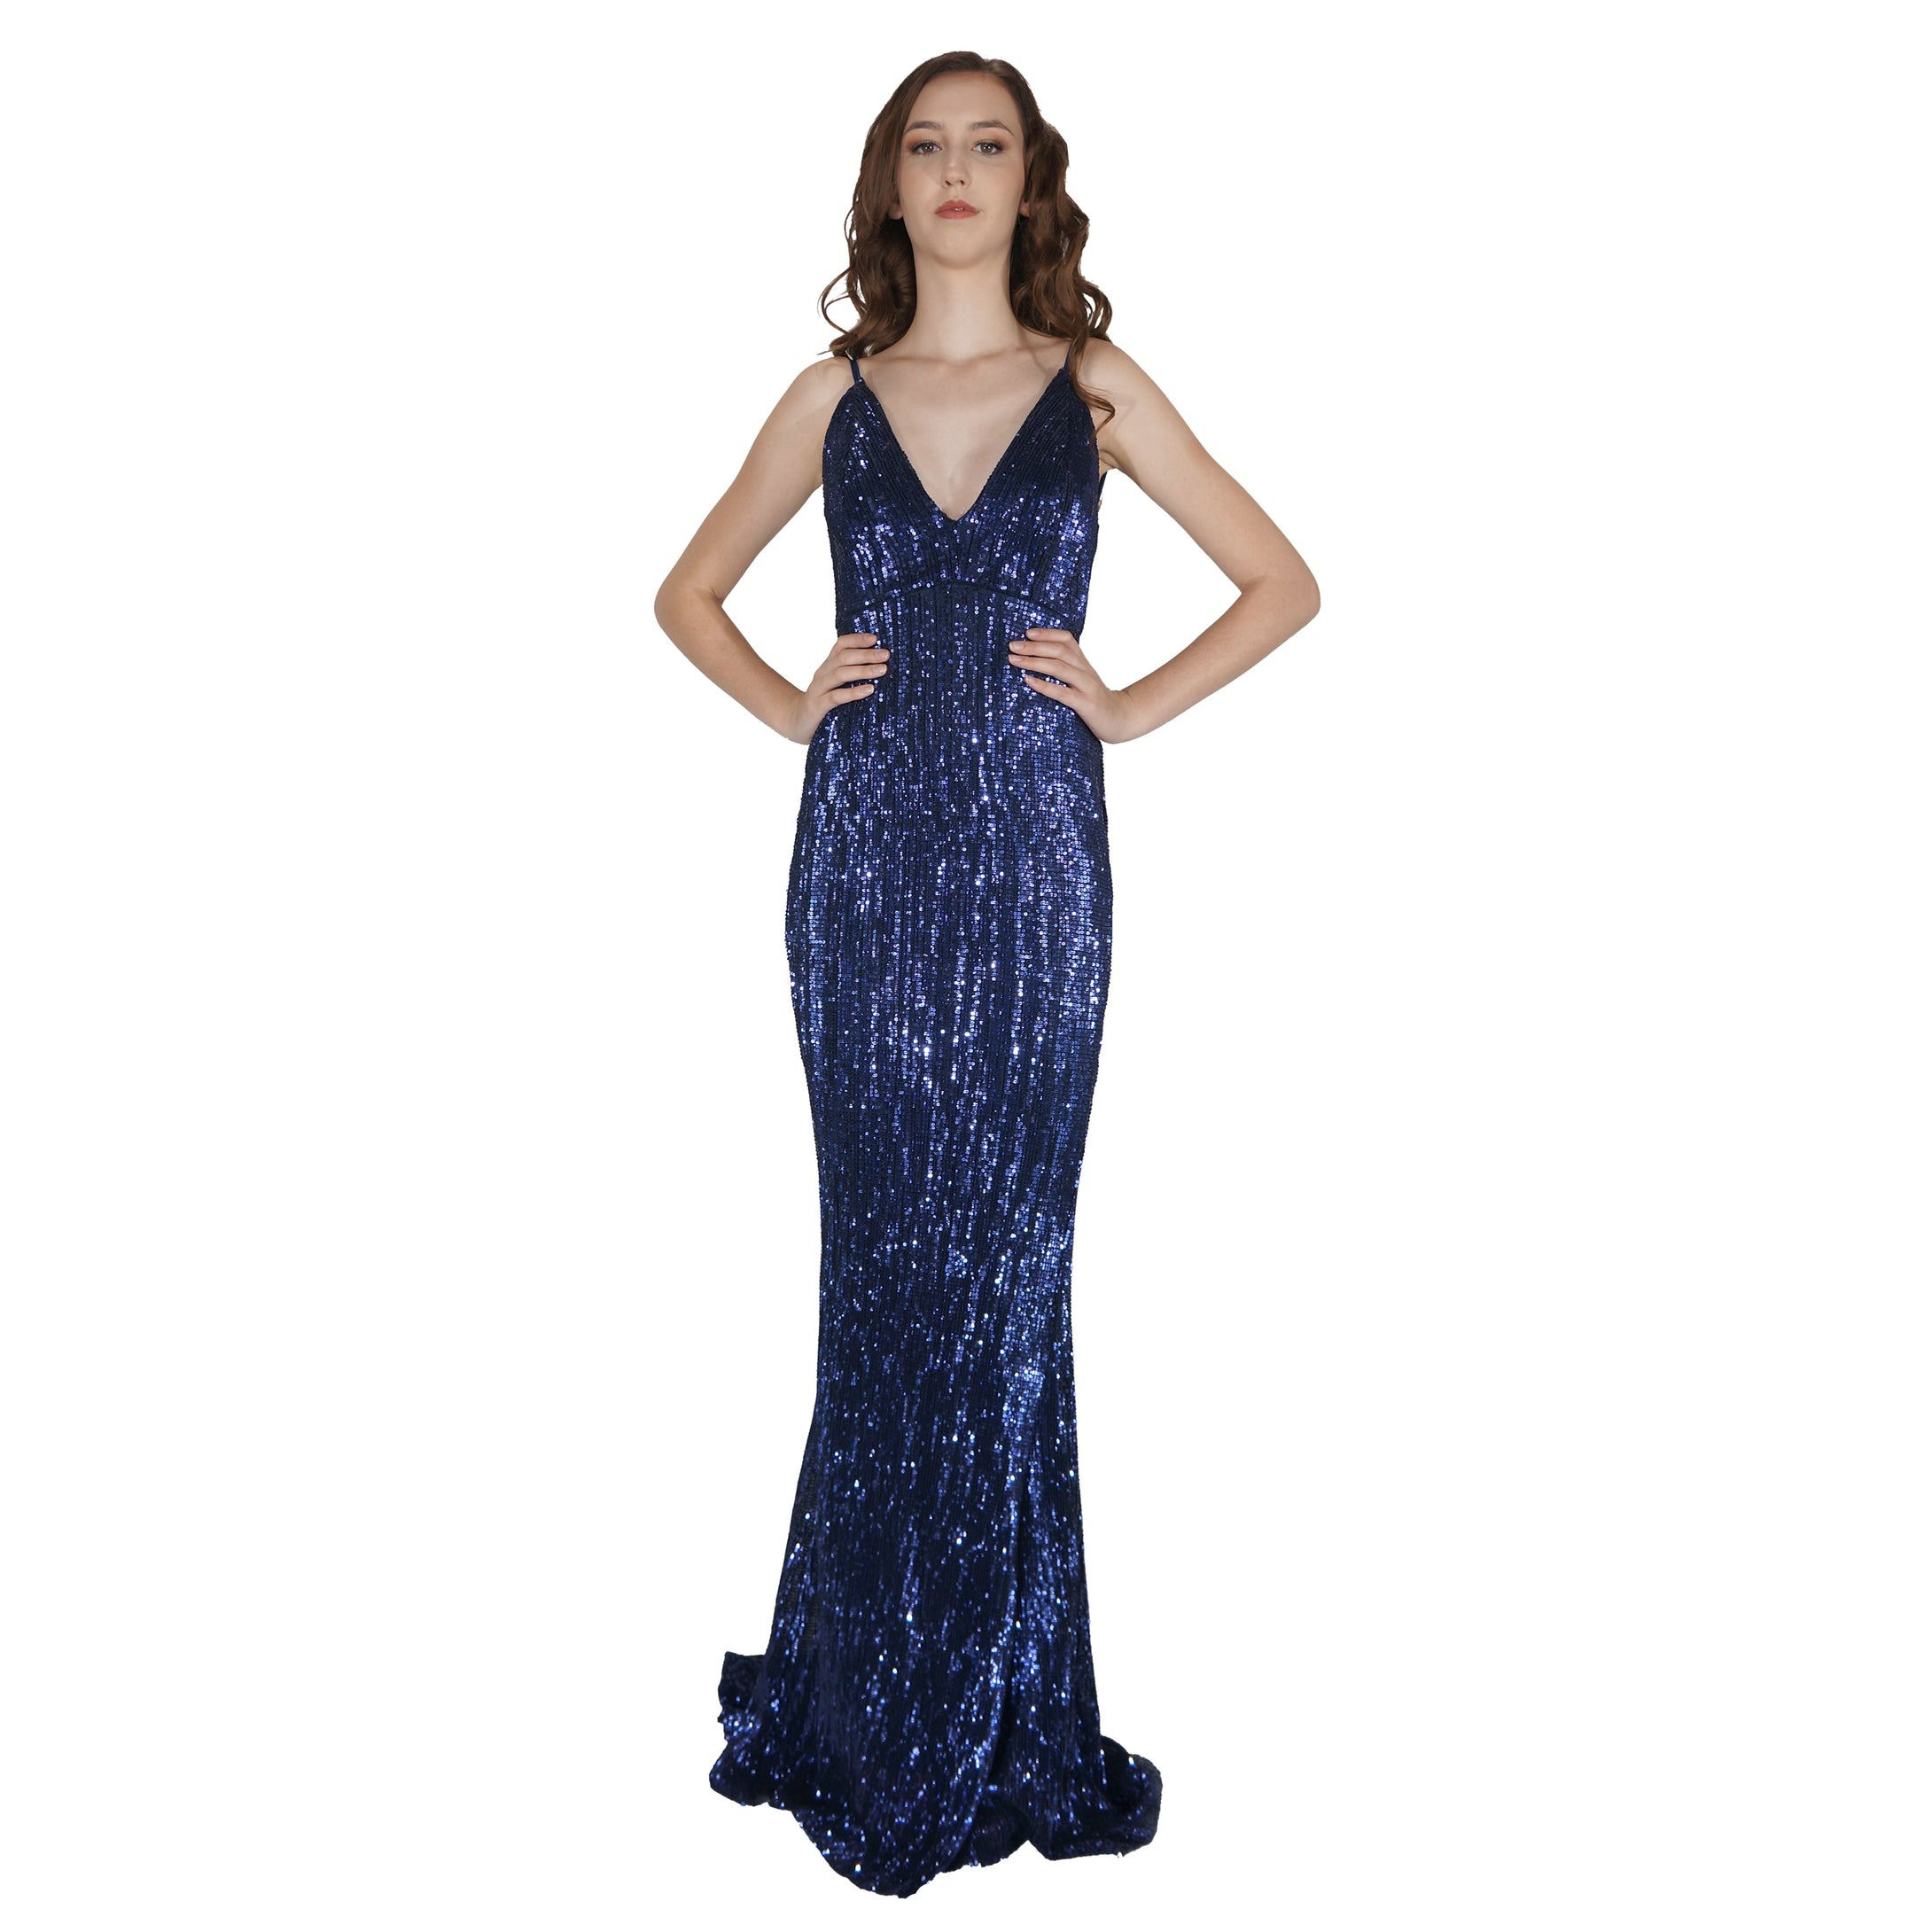 Long Backless Navy Sequin Evening Dress Envious Bridal & Formal